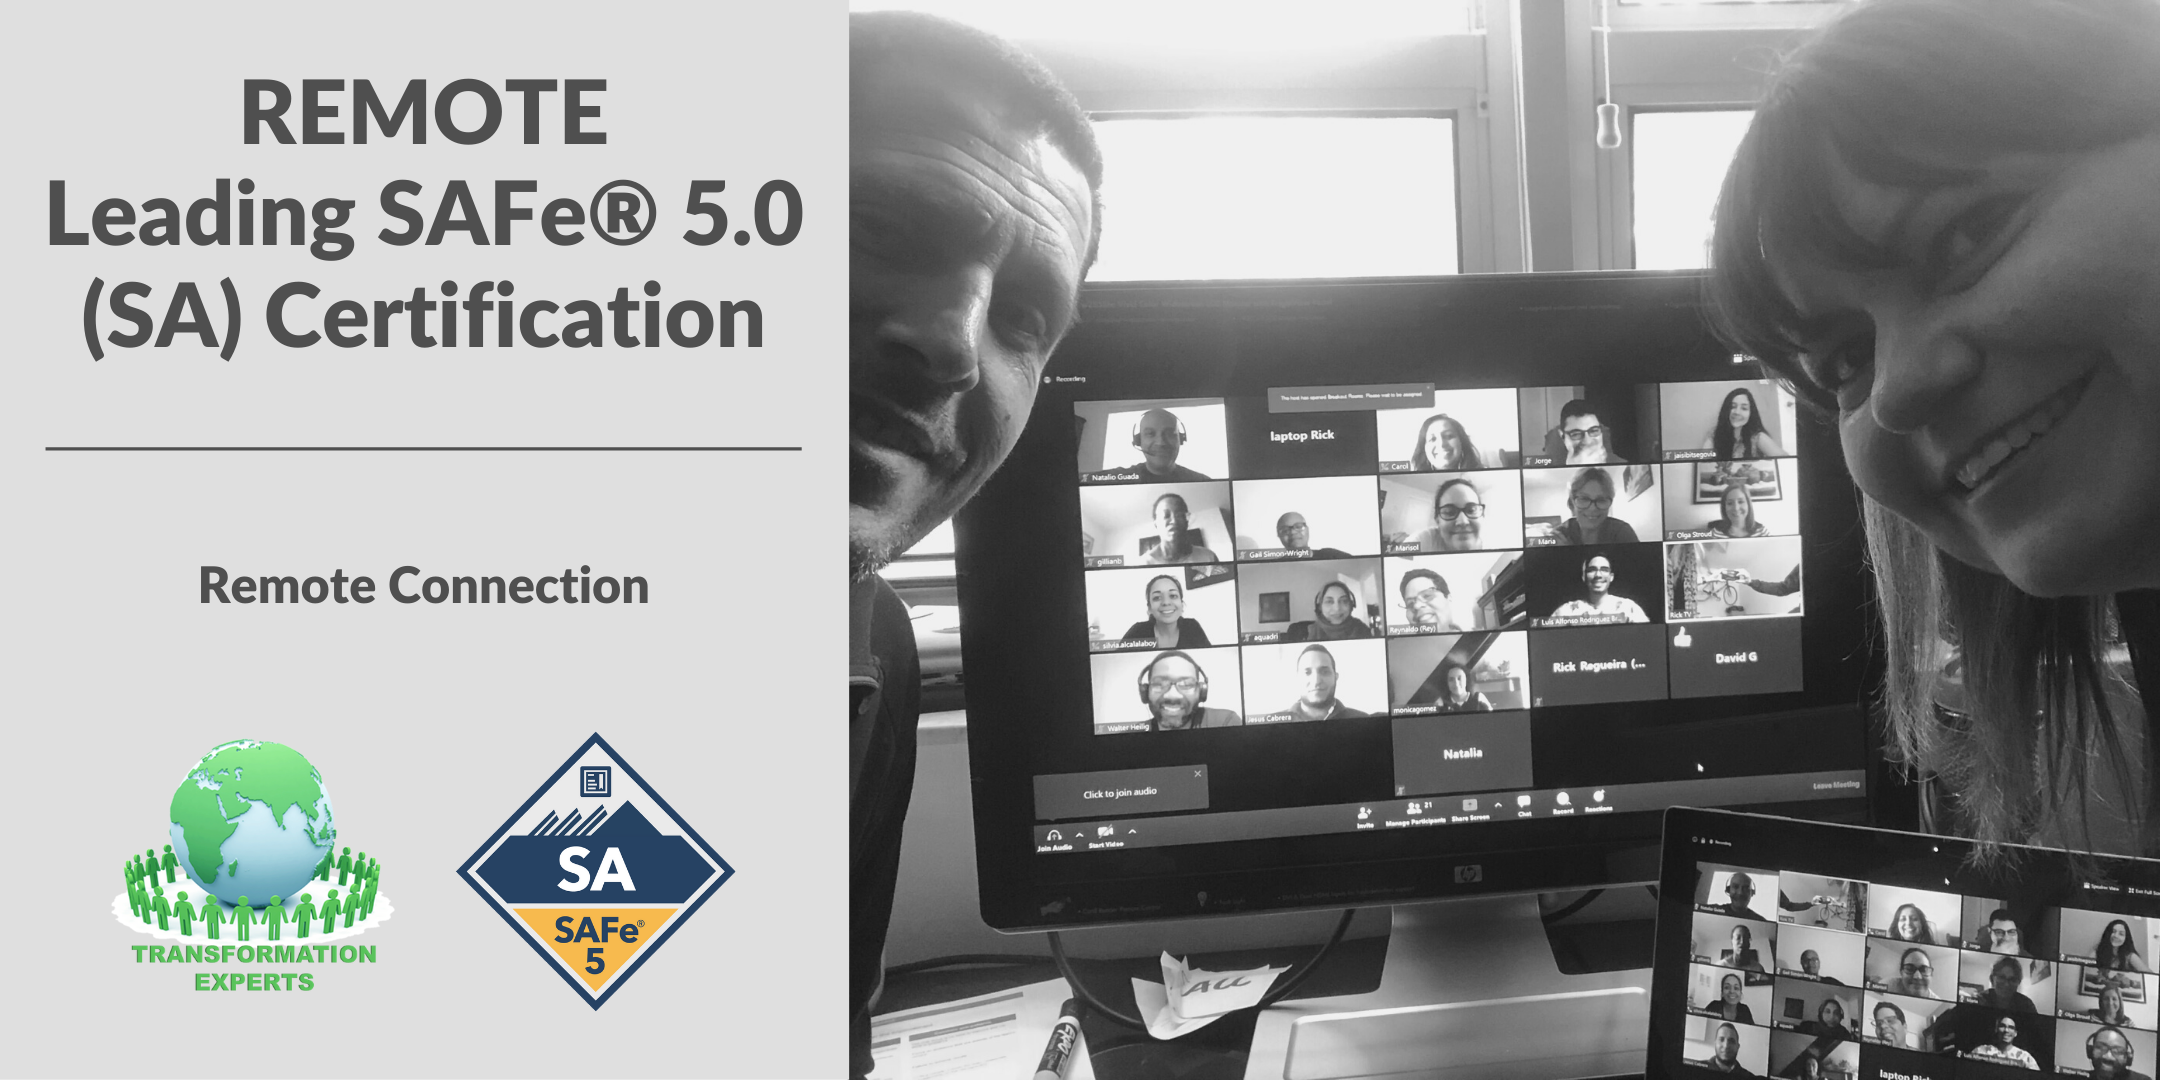 REMOTE Learning Boston | Leading SAFe® 5.0 Certification Course